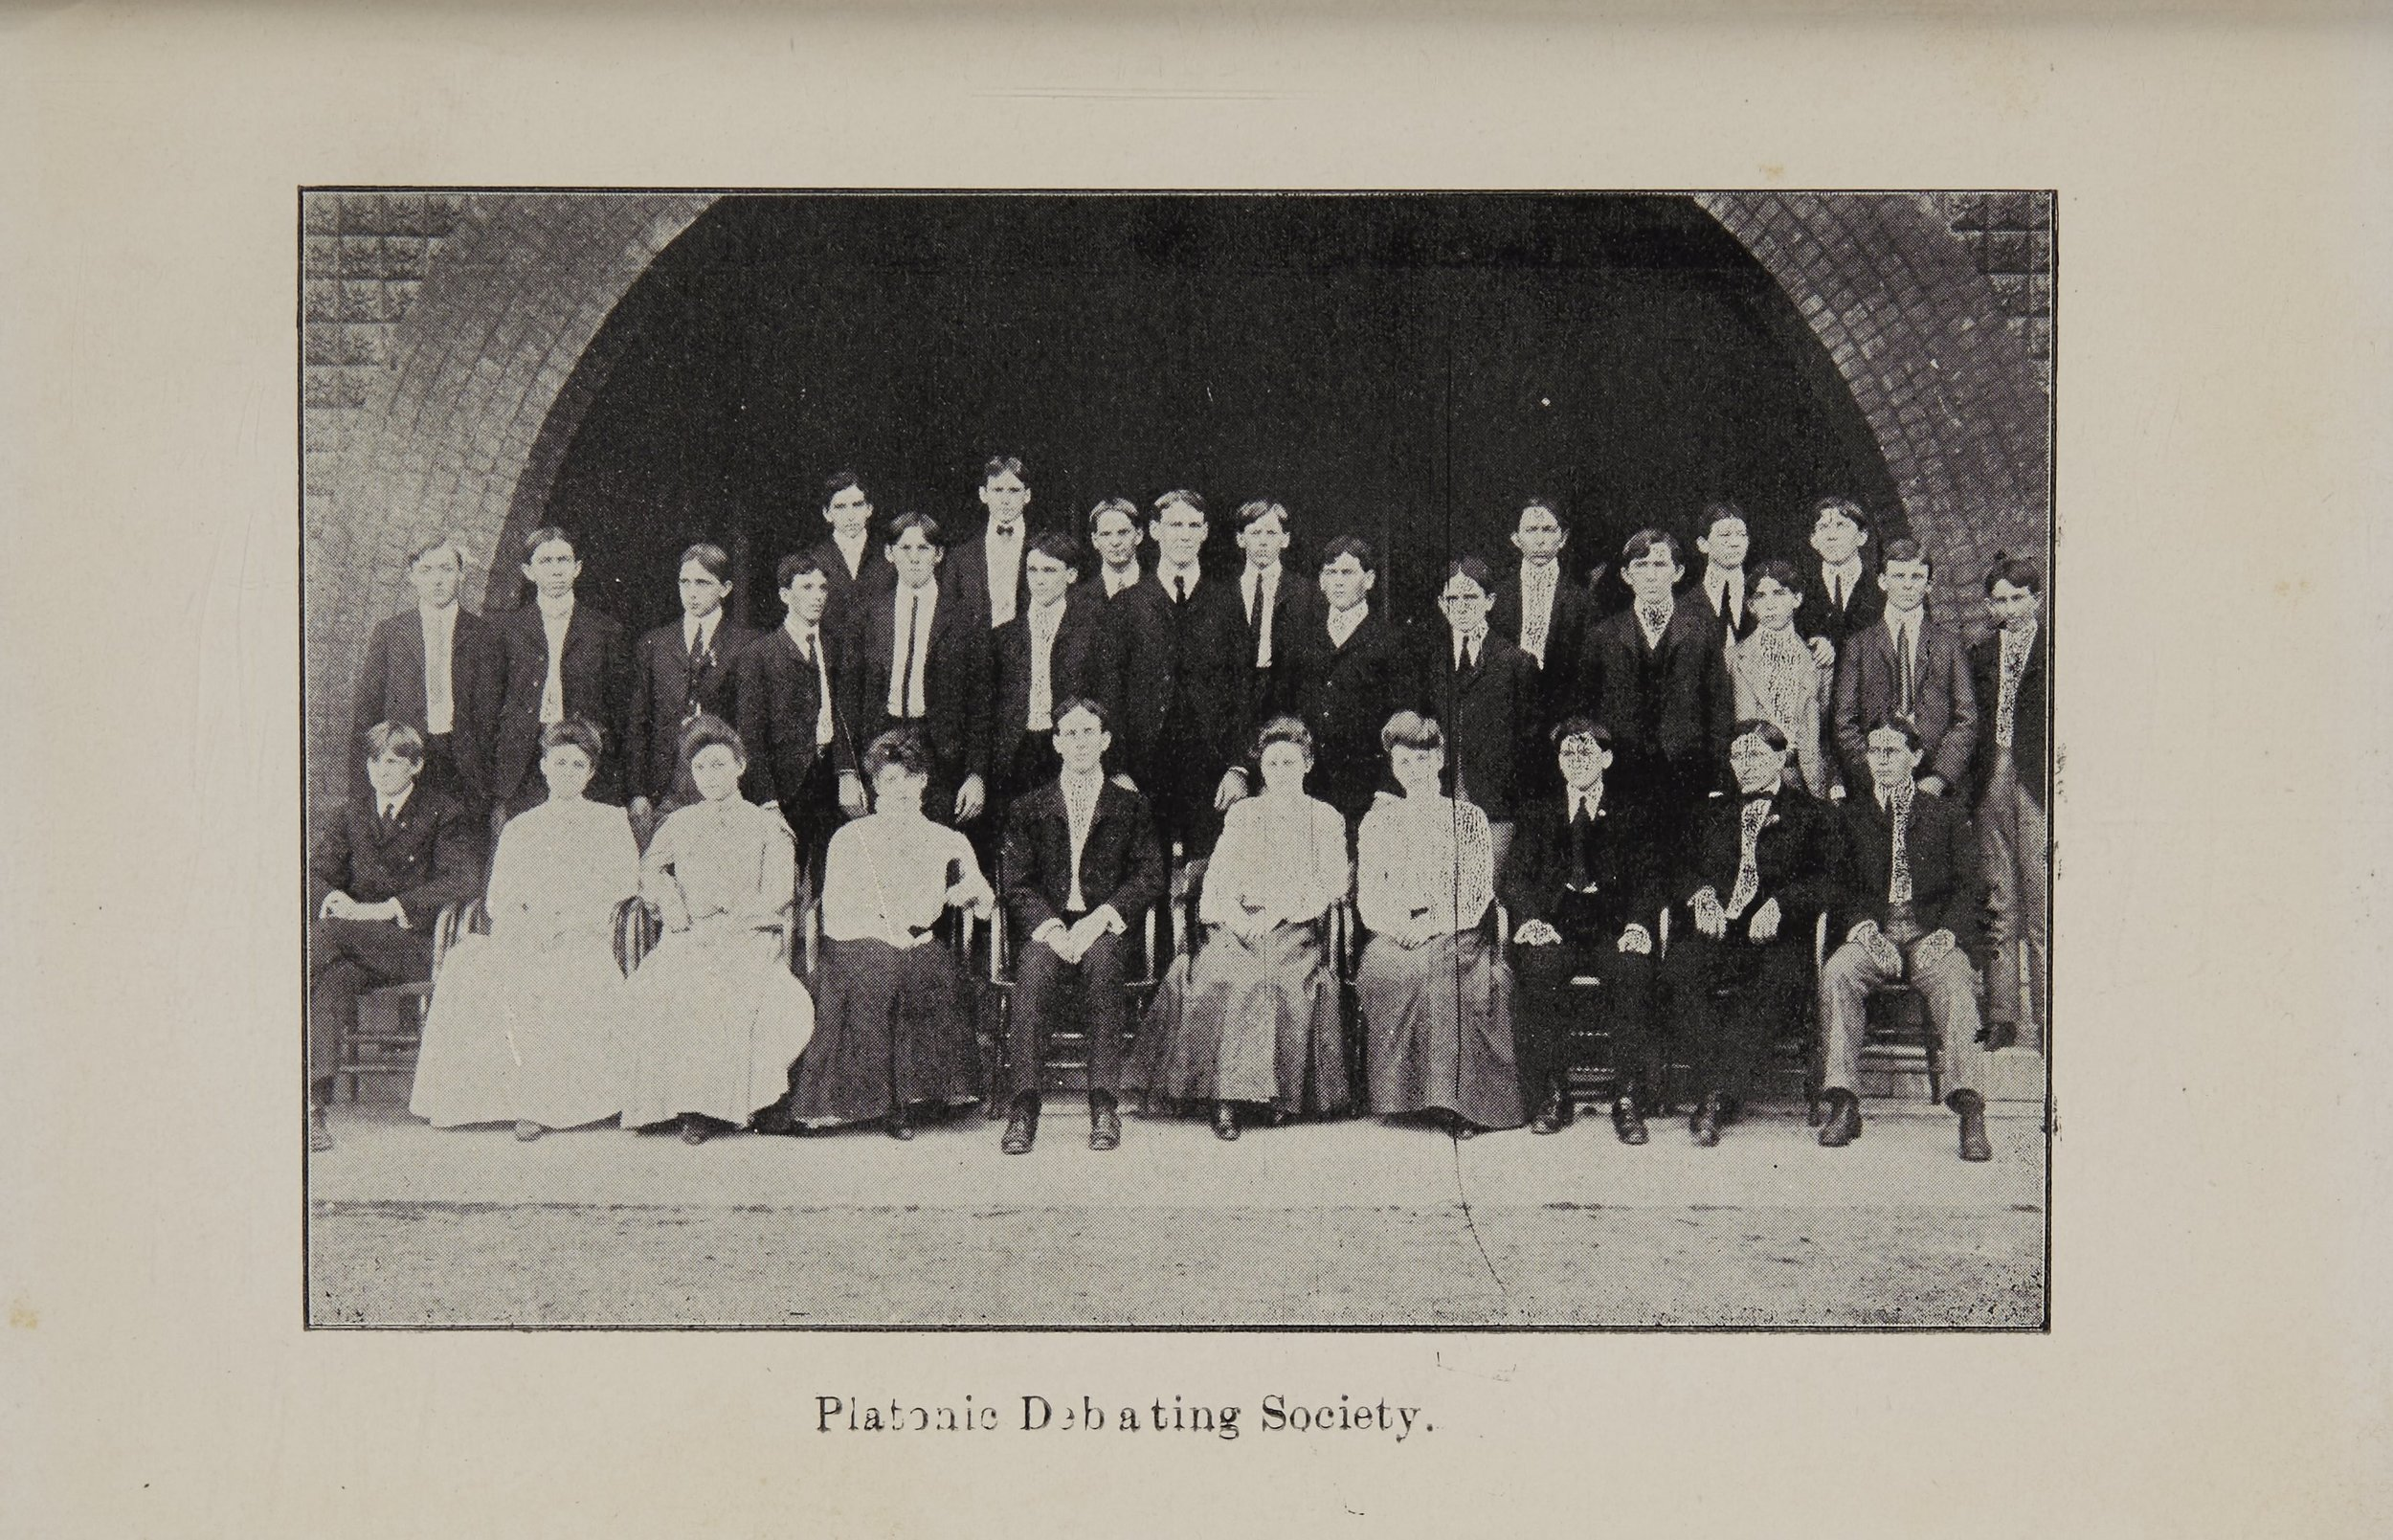 Platonic Debating Society - 1903 - 1904